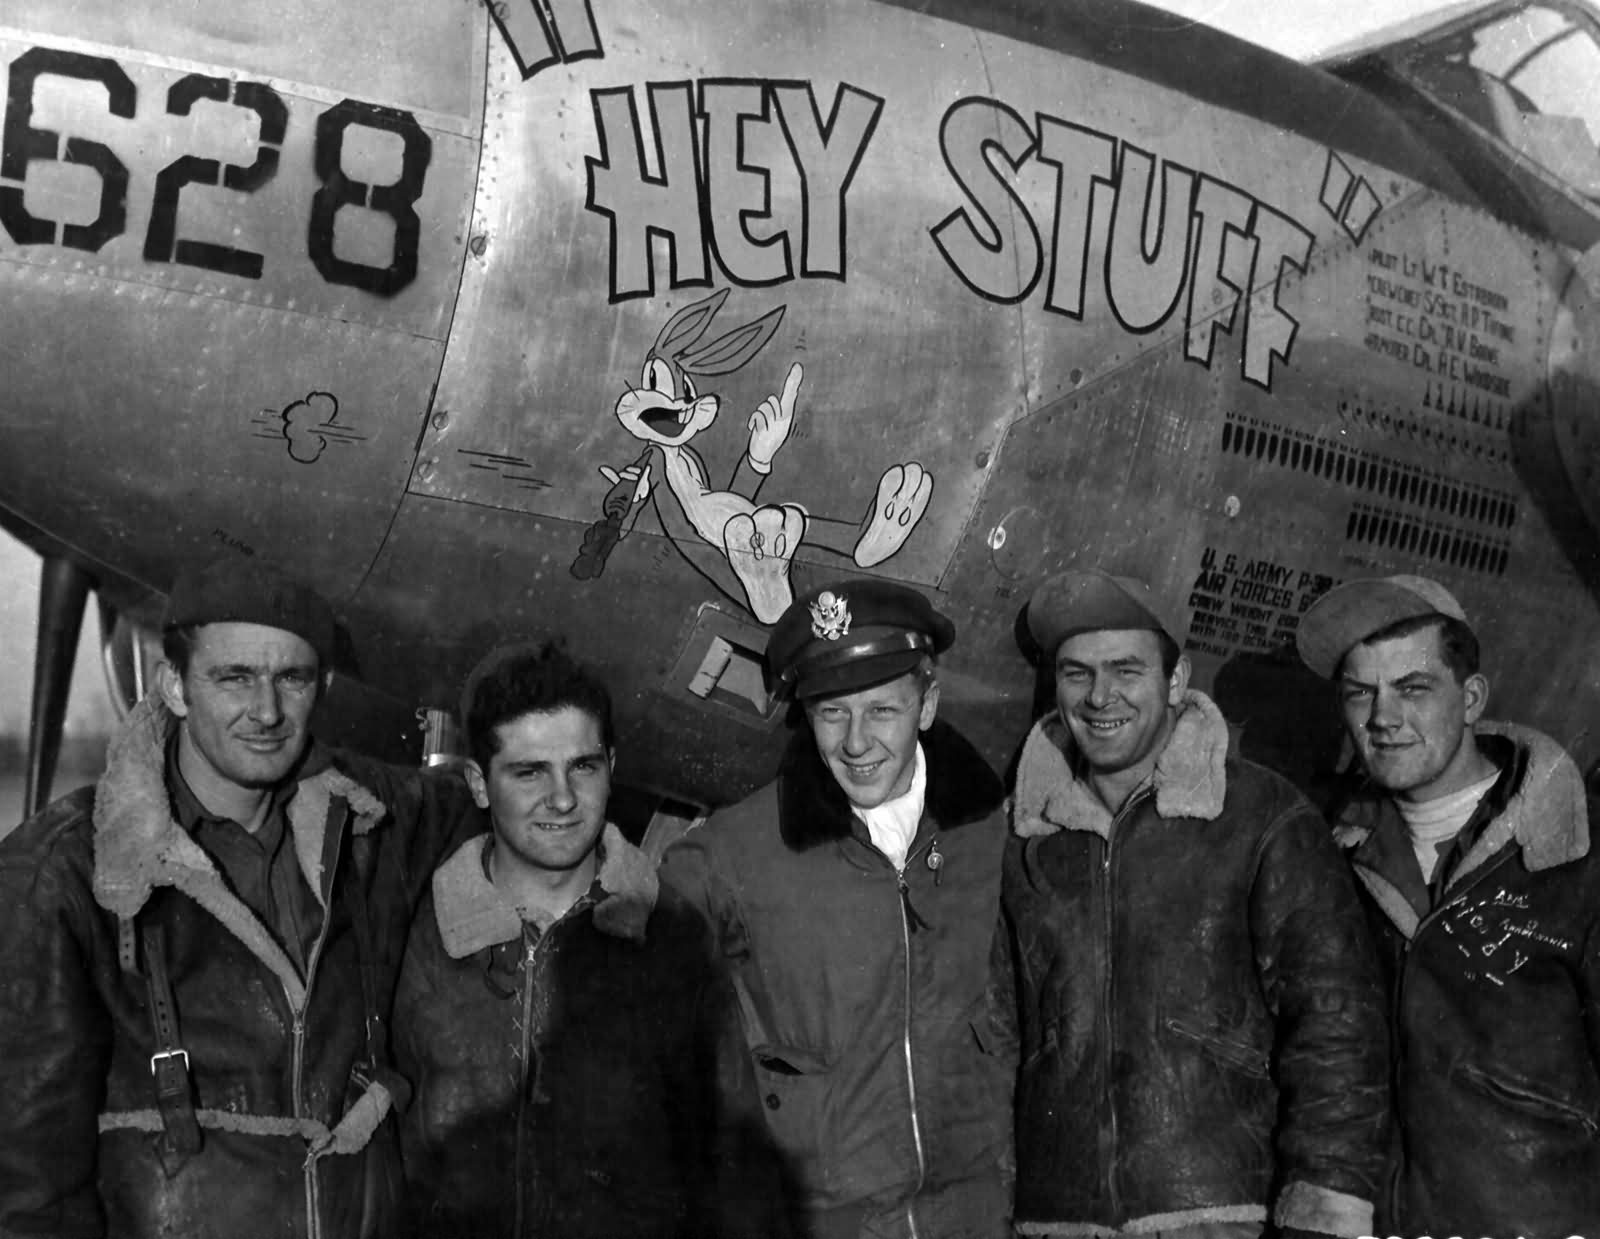 """P-38J Lightning 44-23628 """"Hey Stuff"""" code 4N-L, pilot 1Lt Estabrook of the 394th Fighter Squadron 367th Fighter Group"""